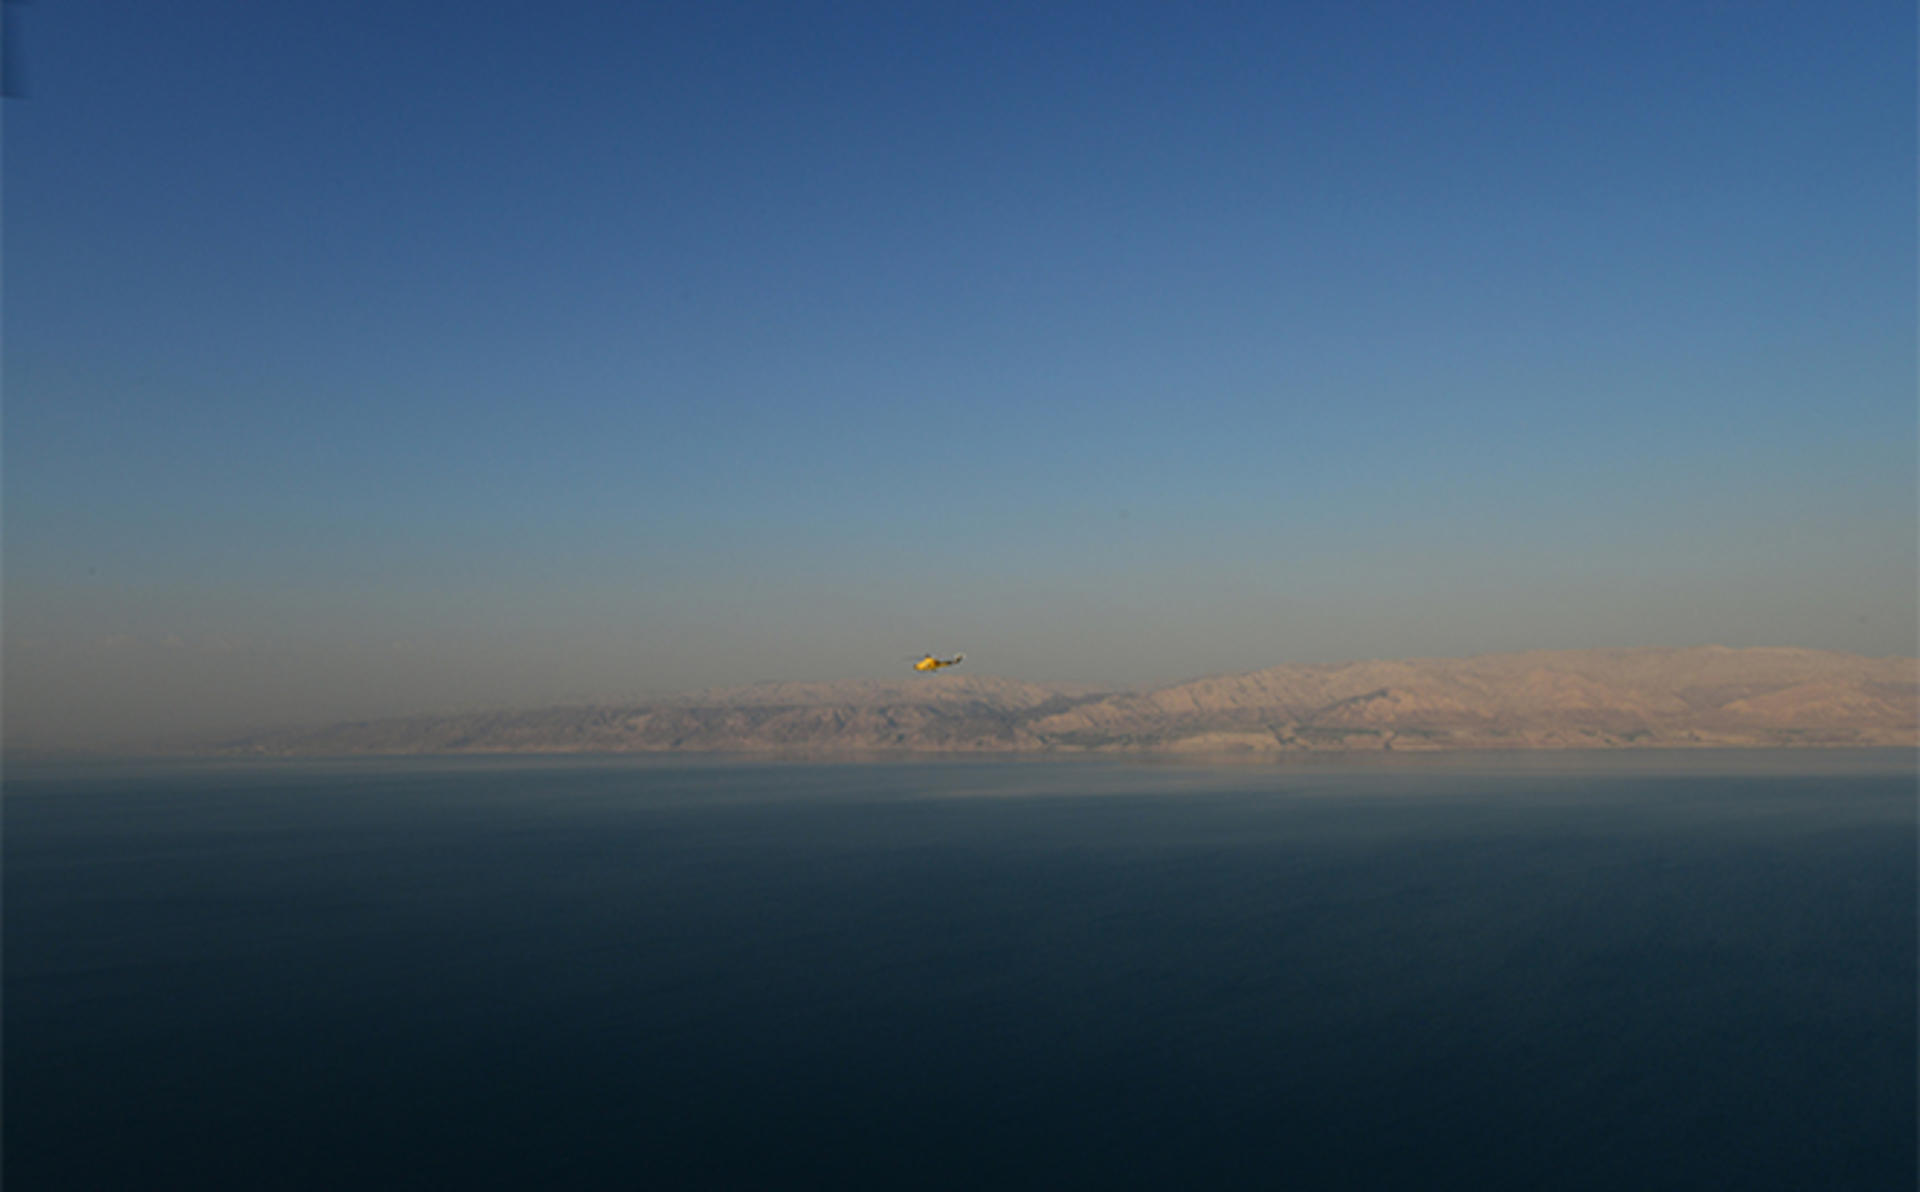 KIAMM2_Flight-above-the-Dead-Sea